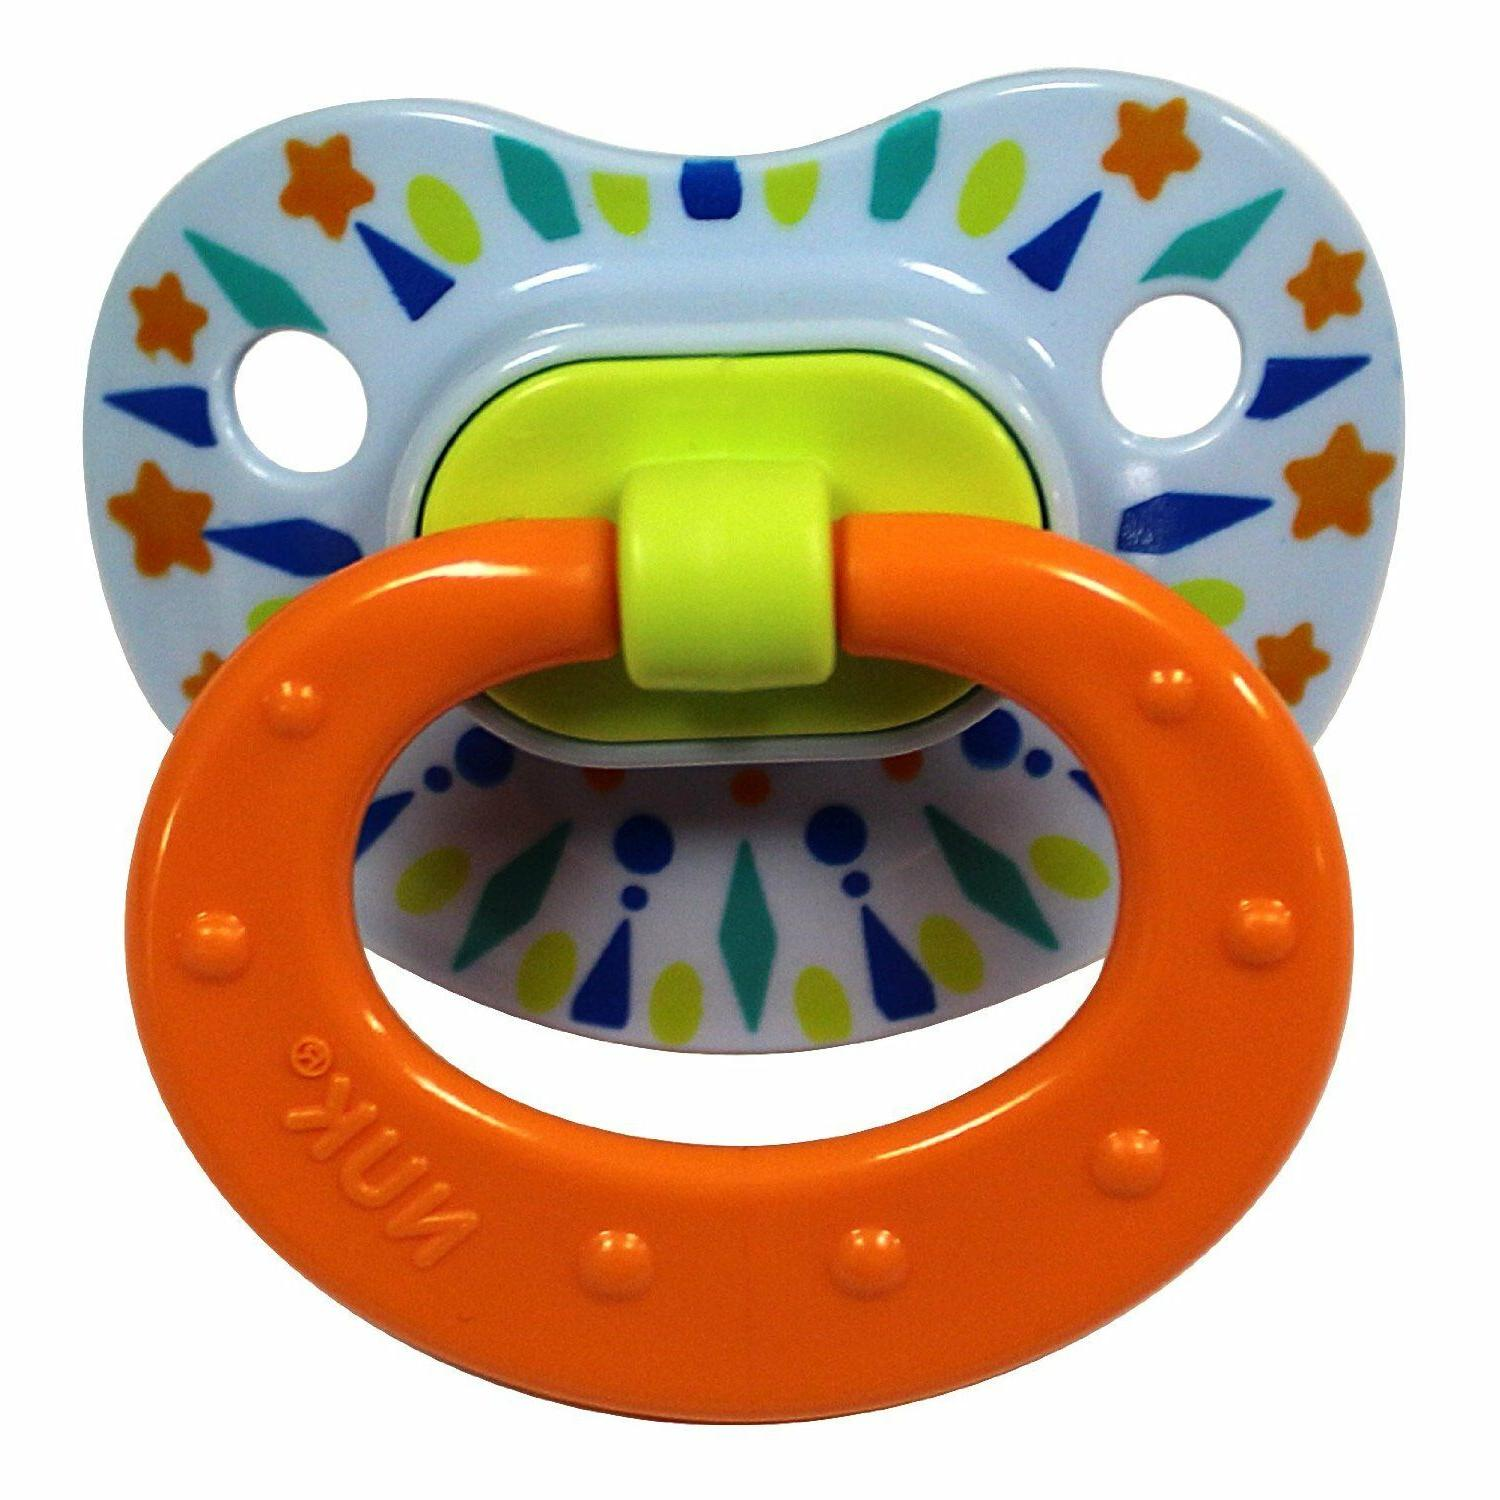 Nuk Tye Silicone Pacifier Boys Colors